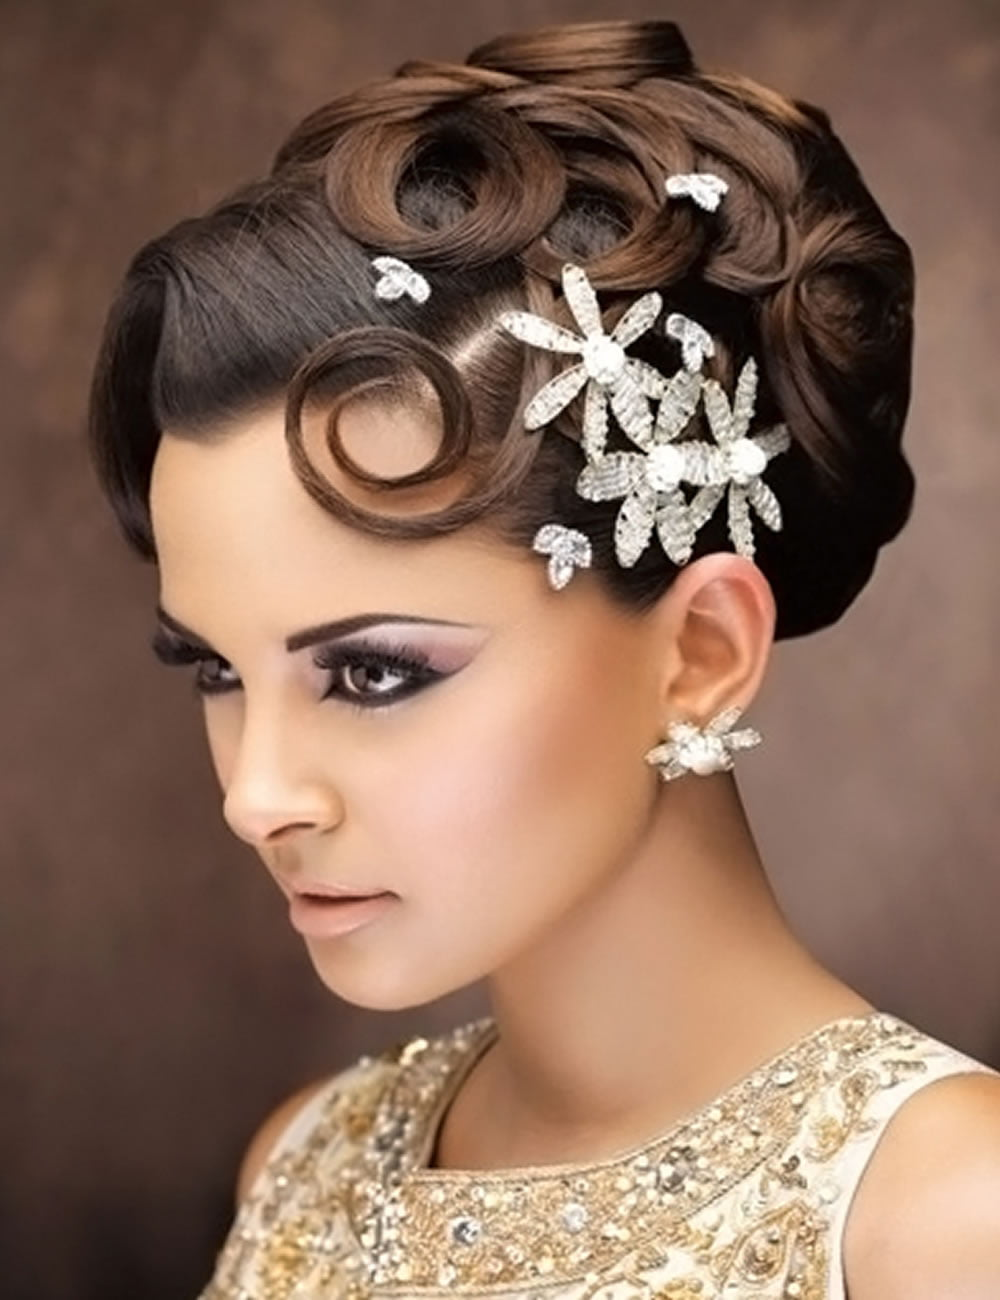 Christmas Party Hairstyles for 2018 & Long, Medium or ... - photo #41